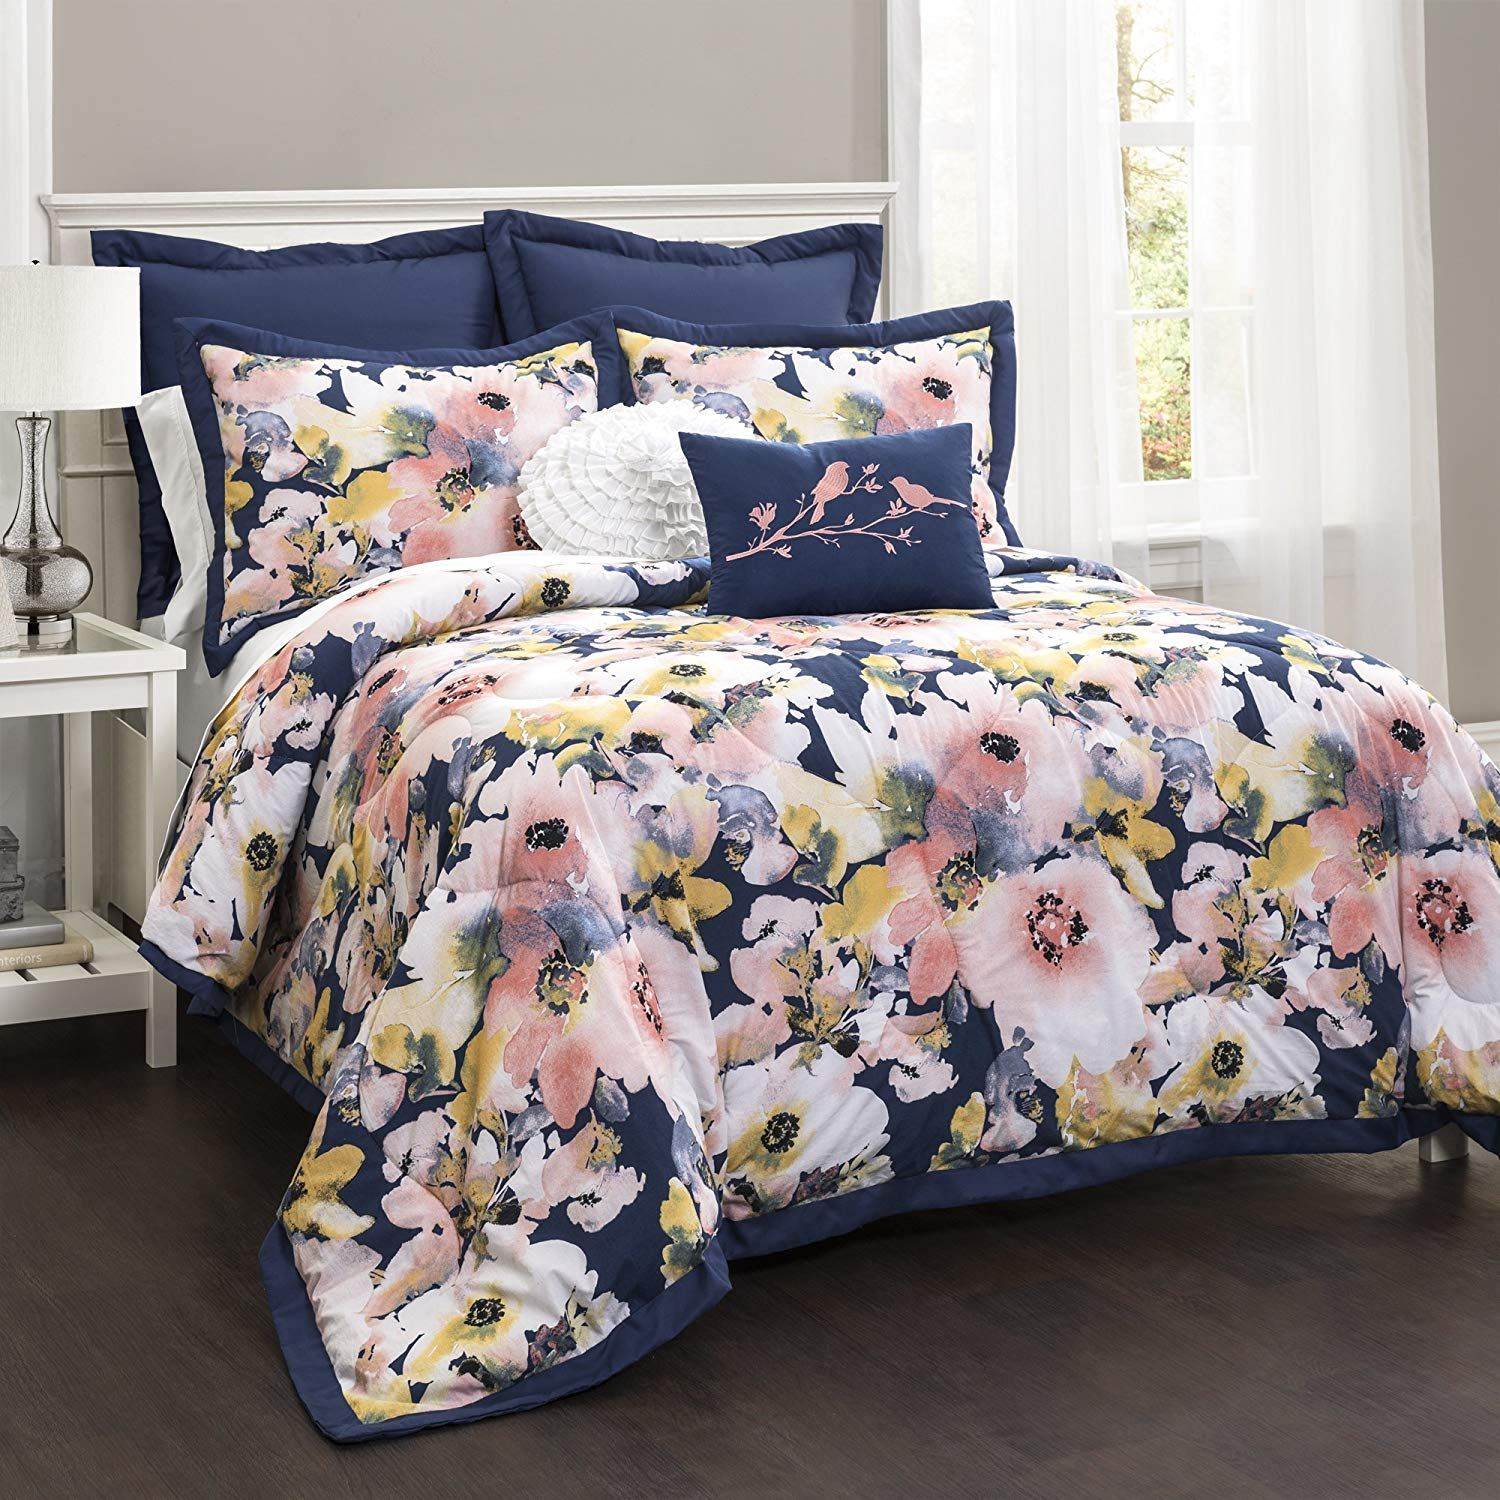 Lush Decor Lush Da C Cor Floral Watercolor 7 Piece Comforter Set Full Queen 0 To View Further For This Floral Comforter Sets Comforter Sets Floral Comforter